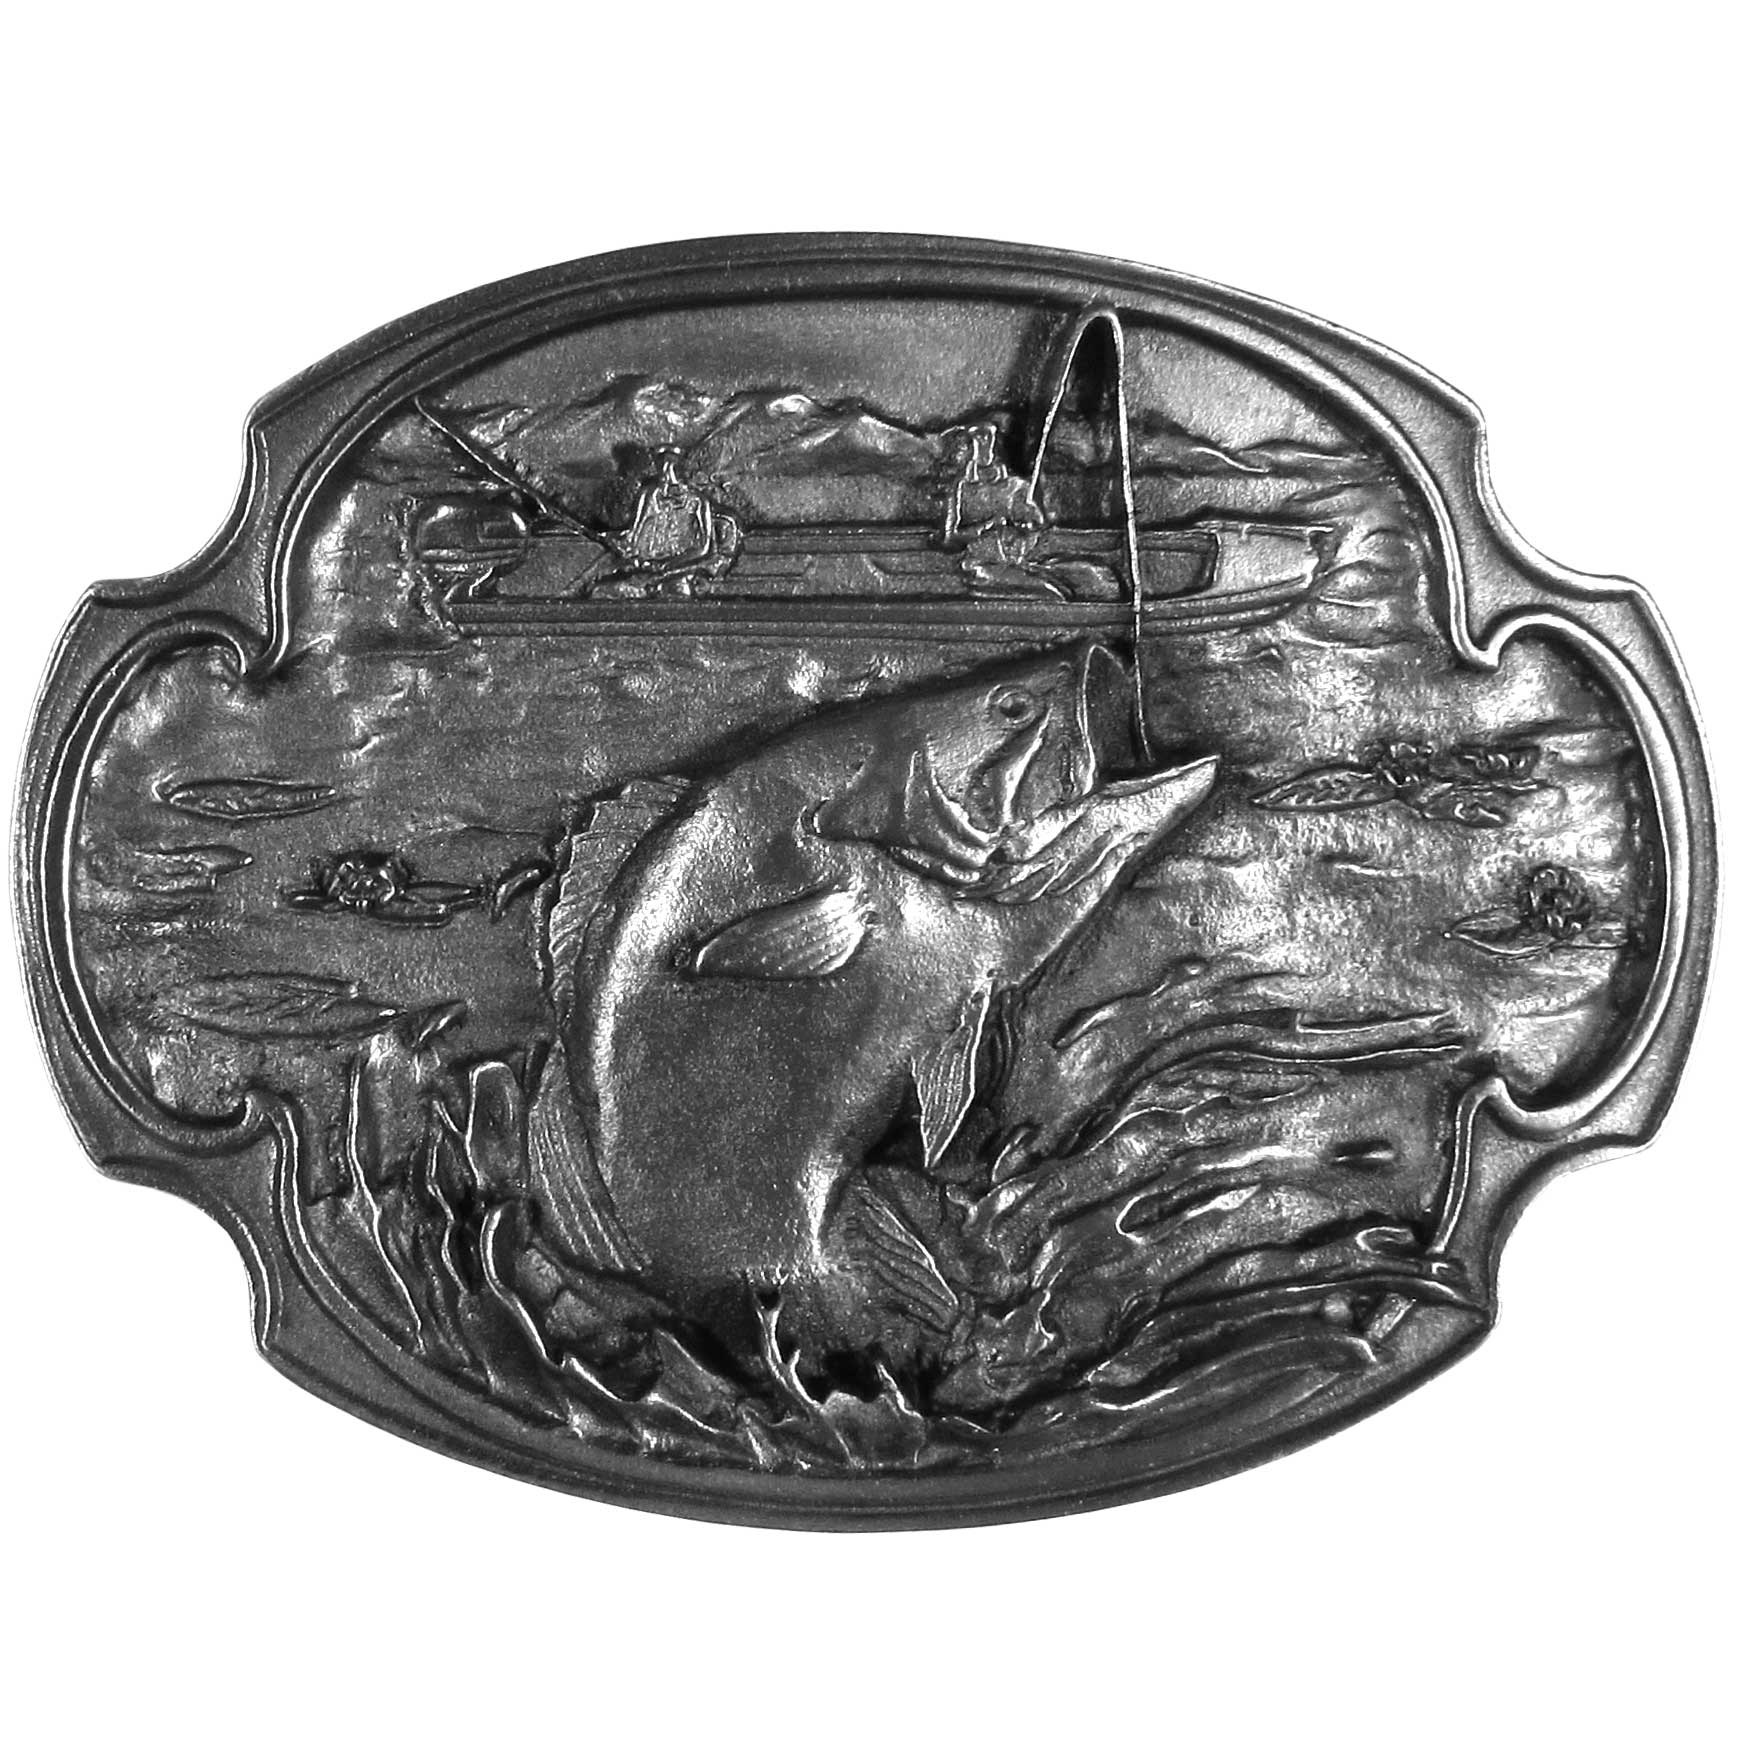 "Bass Fishing Antiqued Belt Buckle - ""This belt buckle features two fishermen in a boat, one is catching a bass in a lake with lilypads.  On the back are the words, """"Bass fishing is a sport that provides a great outdoor experience.  Bass fishing has thousands of loyal followers who have come to know the thrill of catching the great sporting fish.""""  Fully cast metal belt buckle with exceptional detail. The buckle features a hooked bass and fits belts up to 2 inches."""